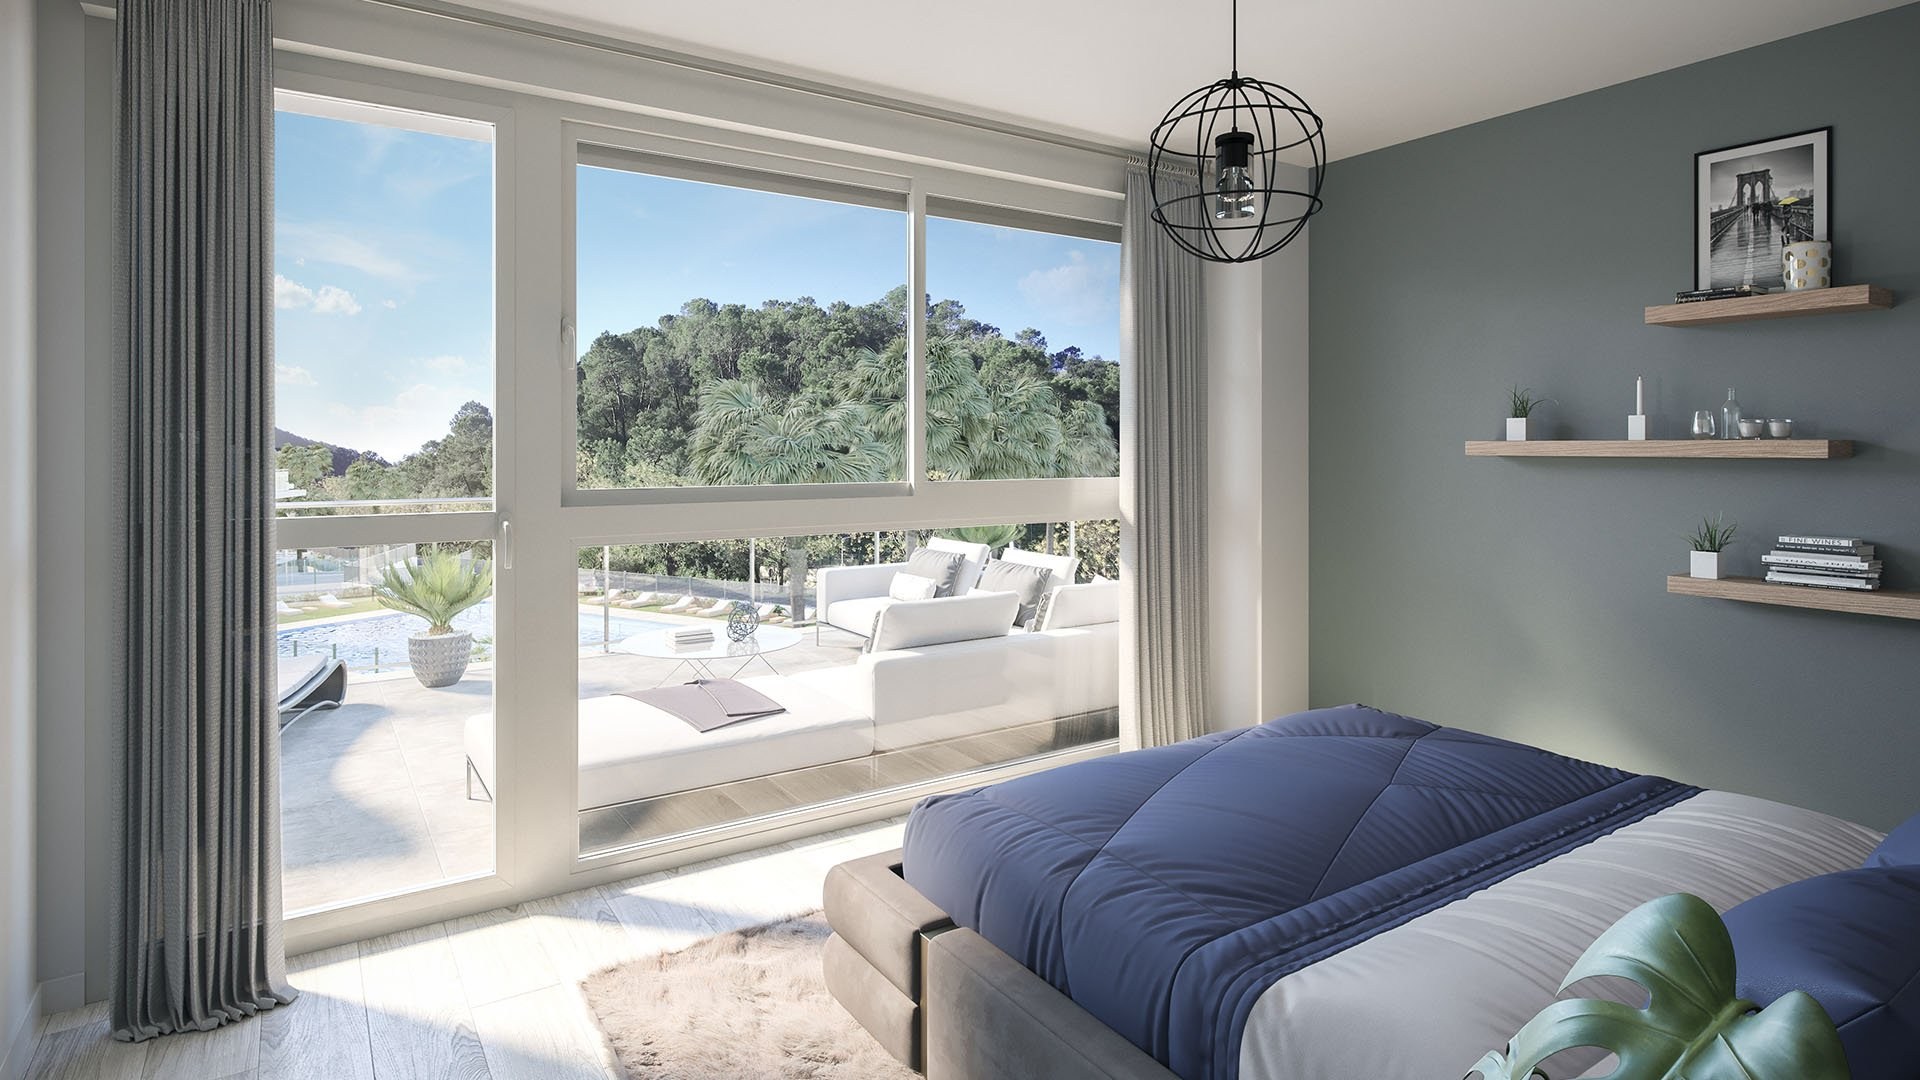 Riverside: Apartments and Penthouses surrounded by nature